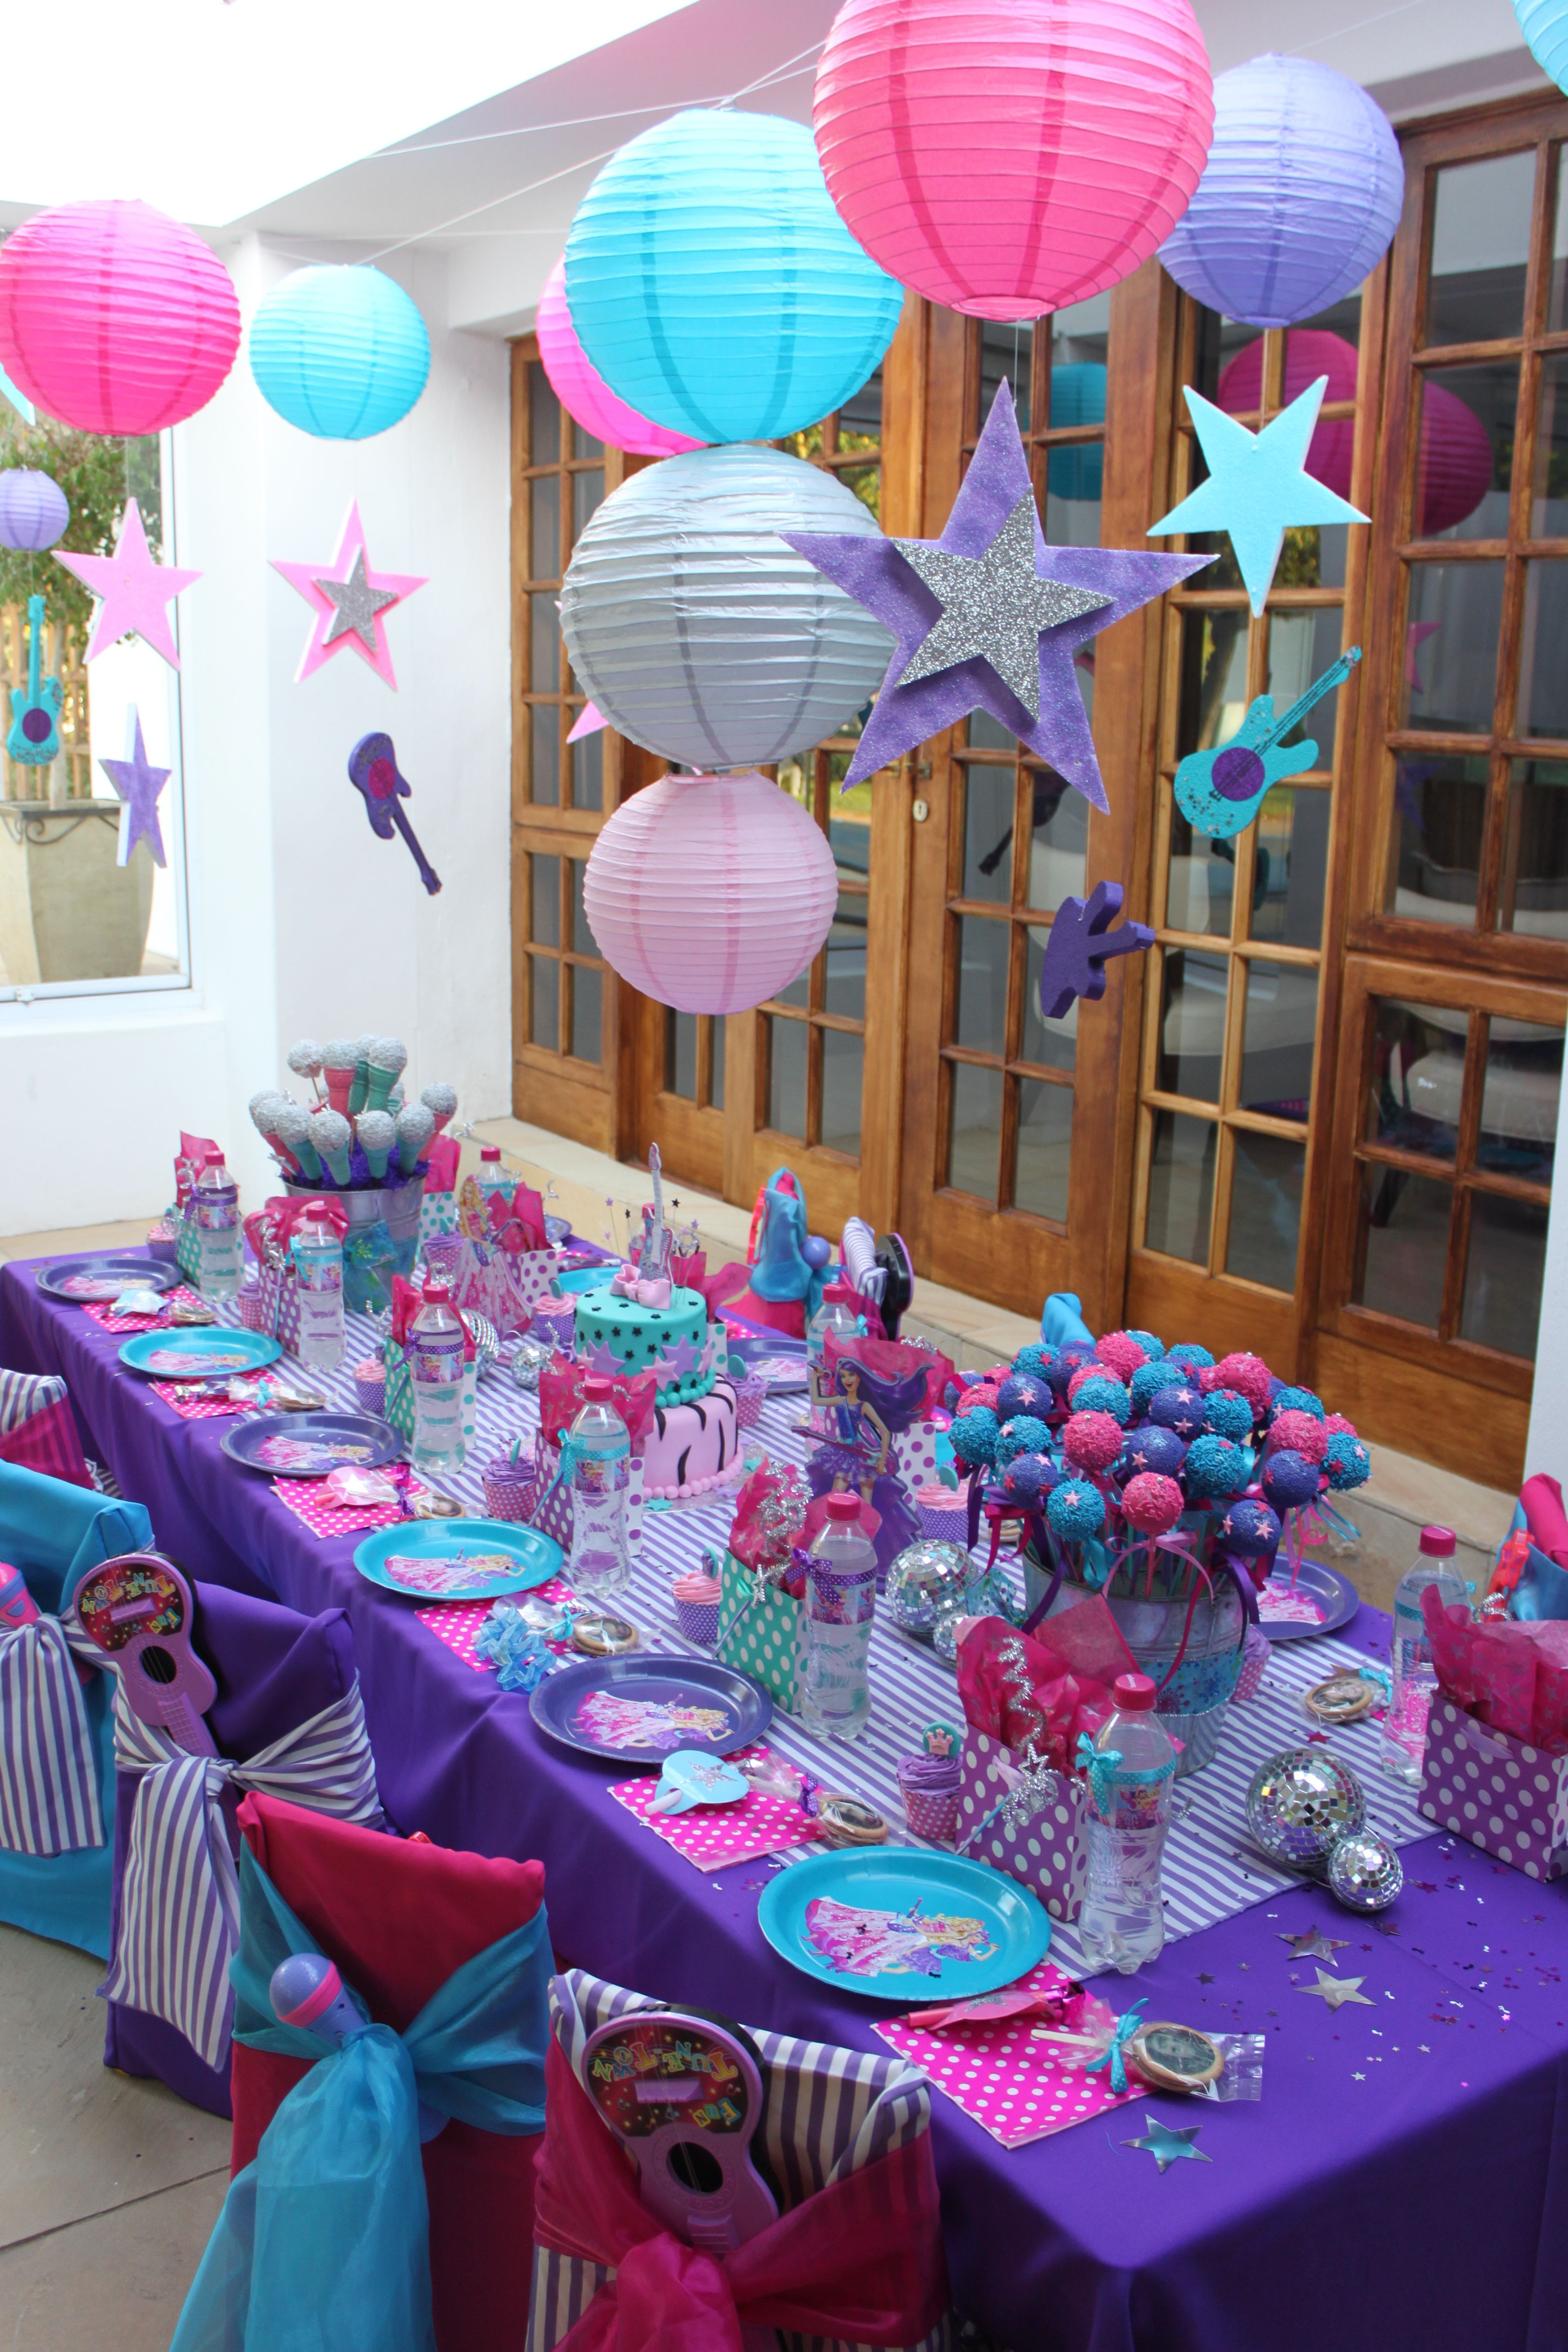 Best ideas about Girl Birthday Party Supplies . Save or Pin Cute simple decorations for a party Just change the Now.